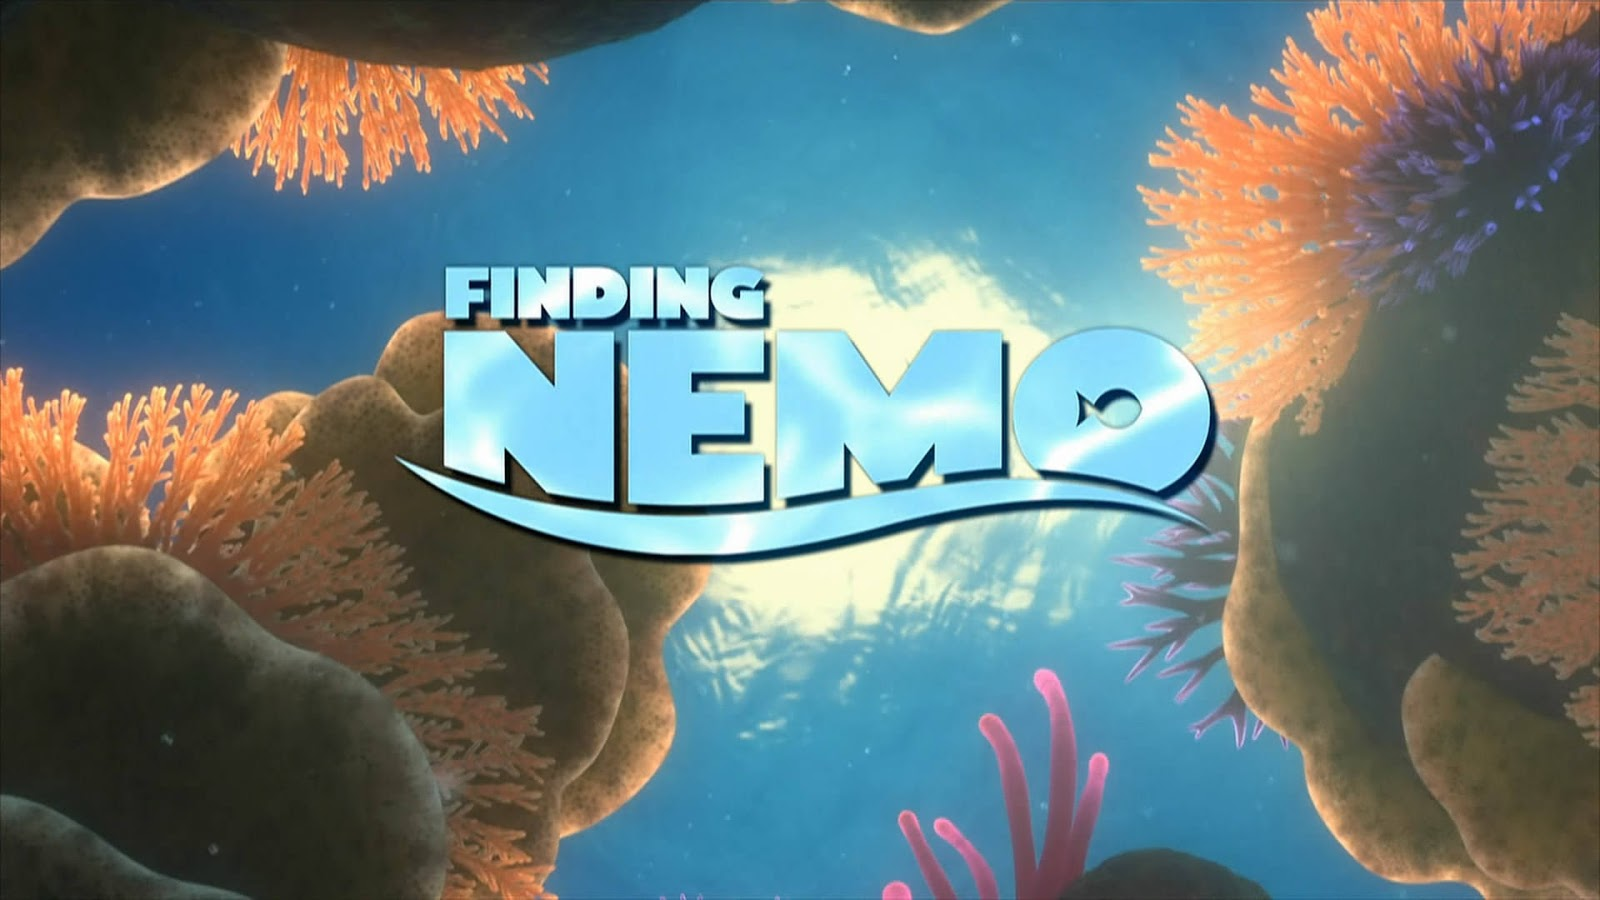 finding nemo the movie Watch finding nemo (2003) 123movies full movie online free in hd quality nemo, an adventurous young clownfish, is unexpectedly taken from his great barrier ree.